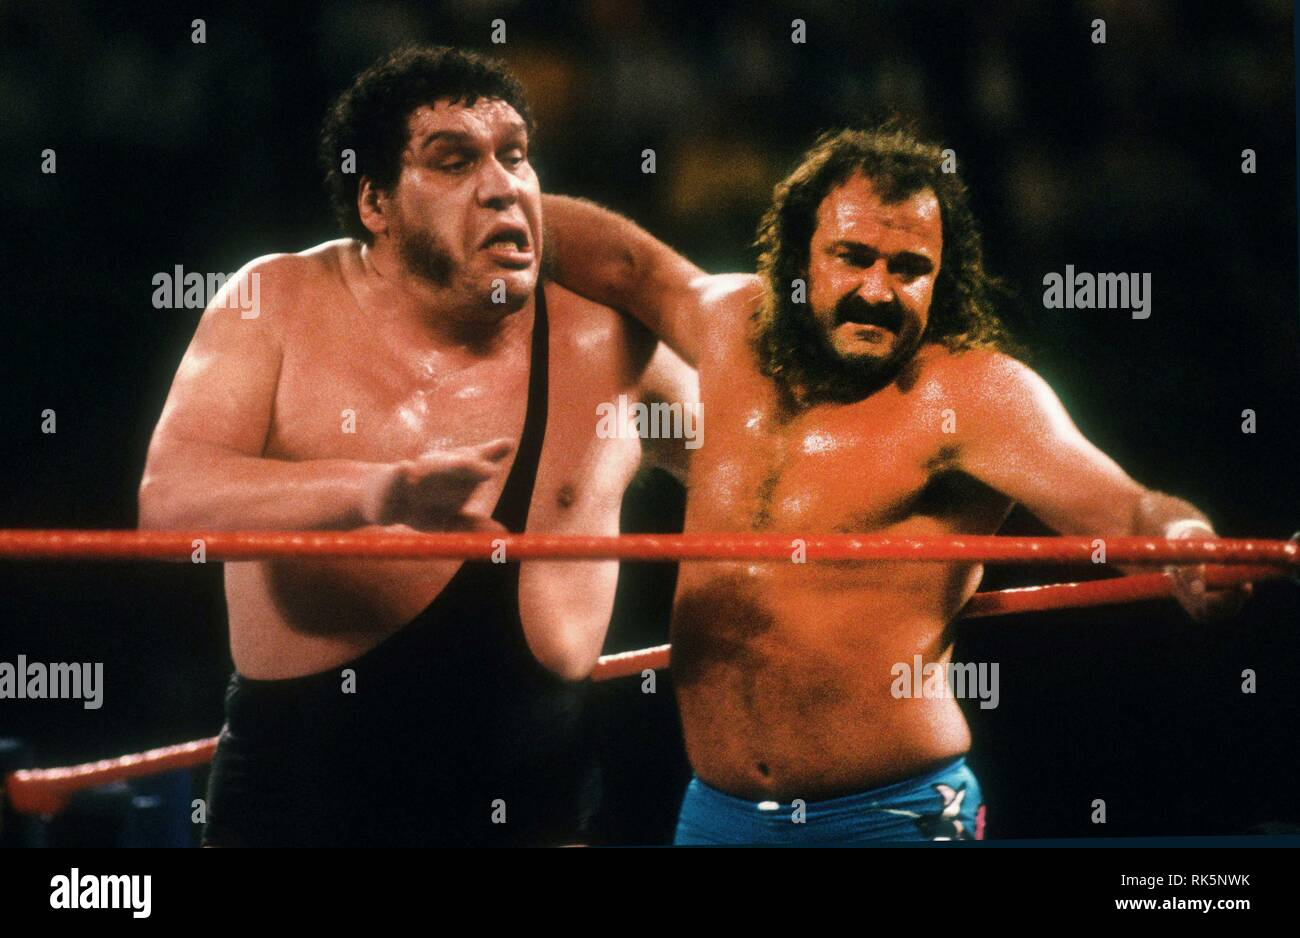 andre the giant hbo download free